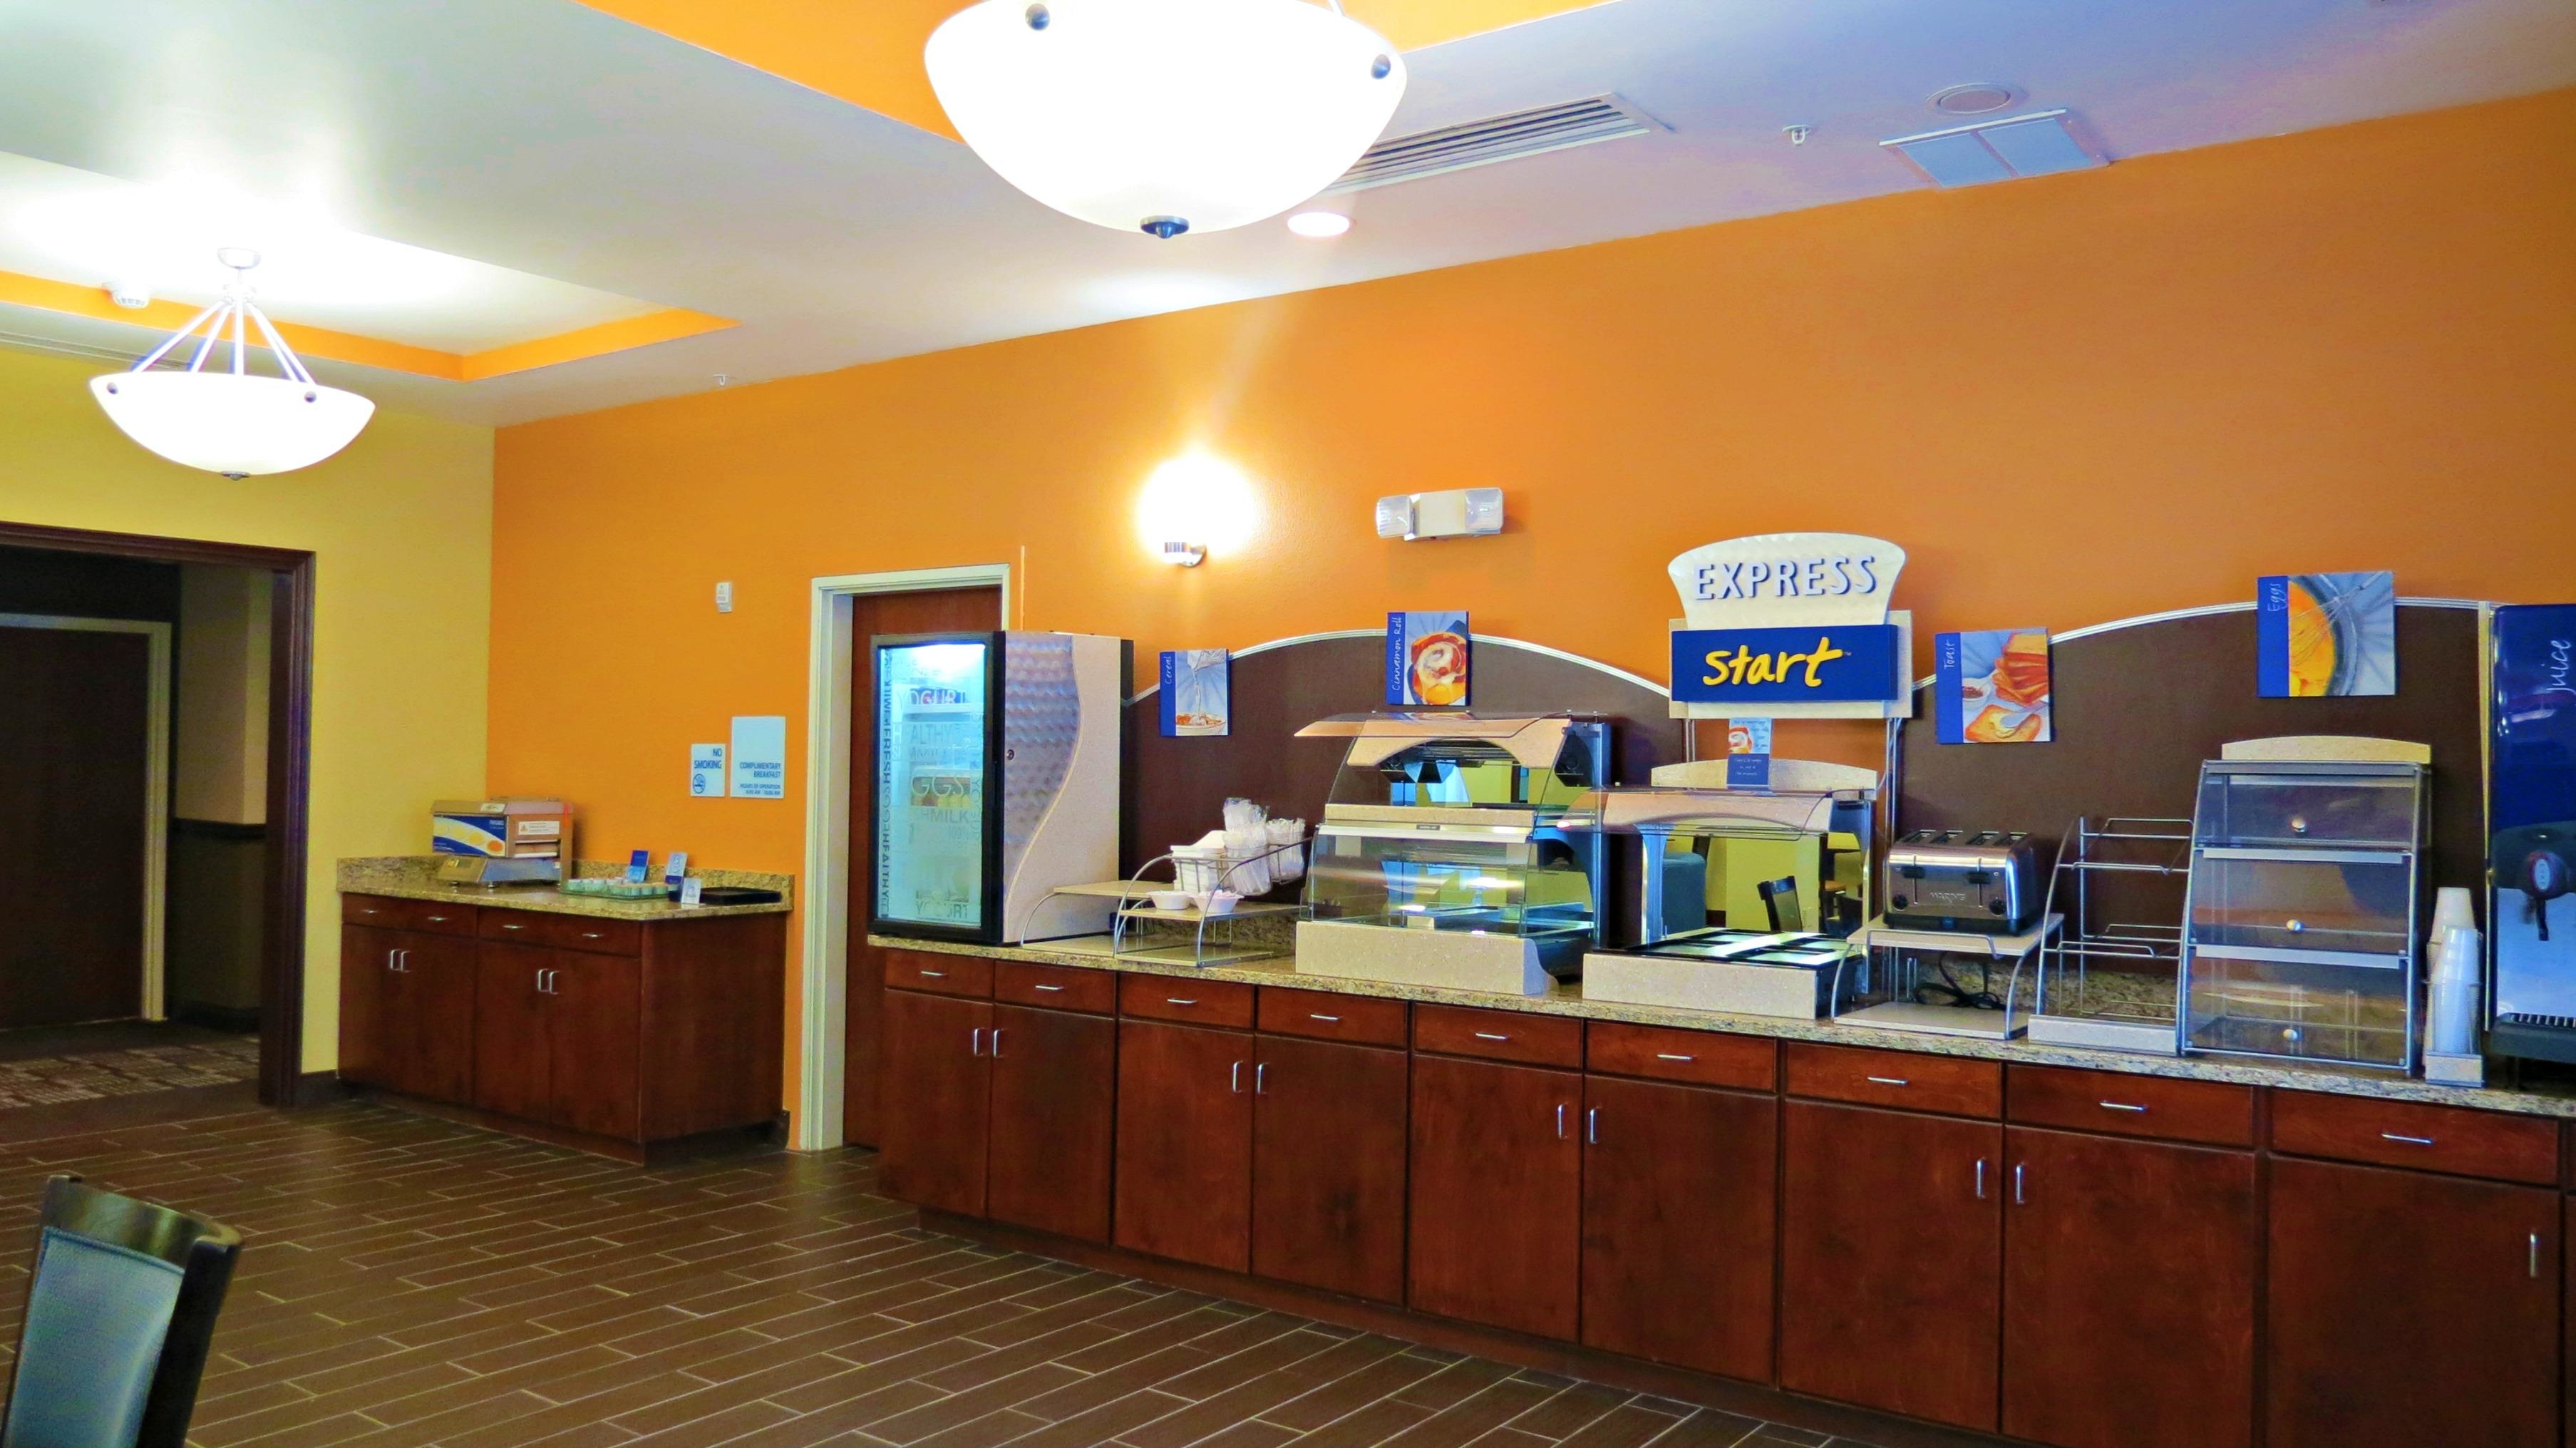 Holiday Inn Express & Suites image 6